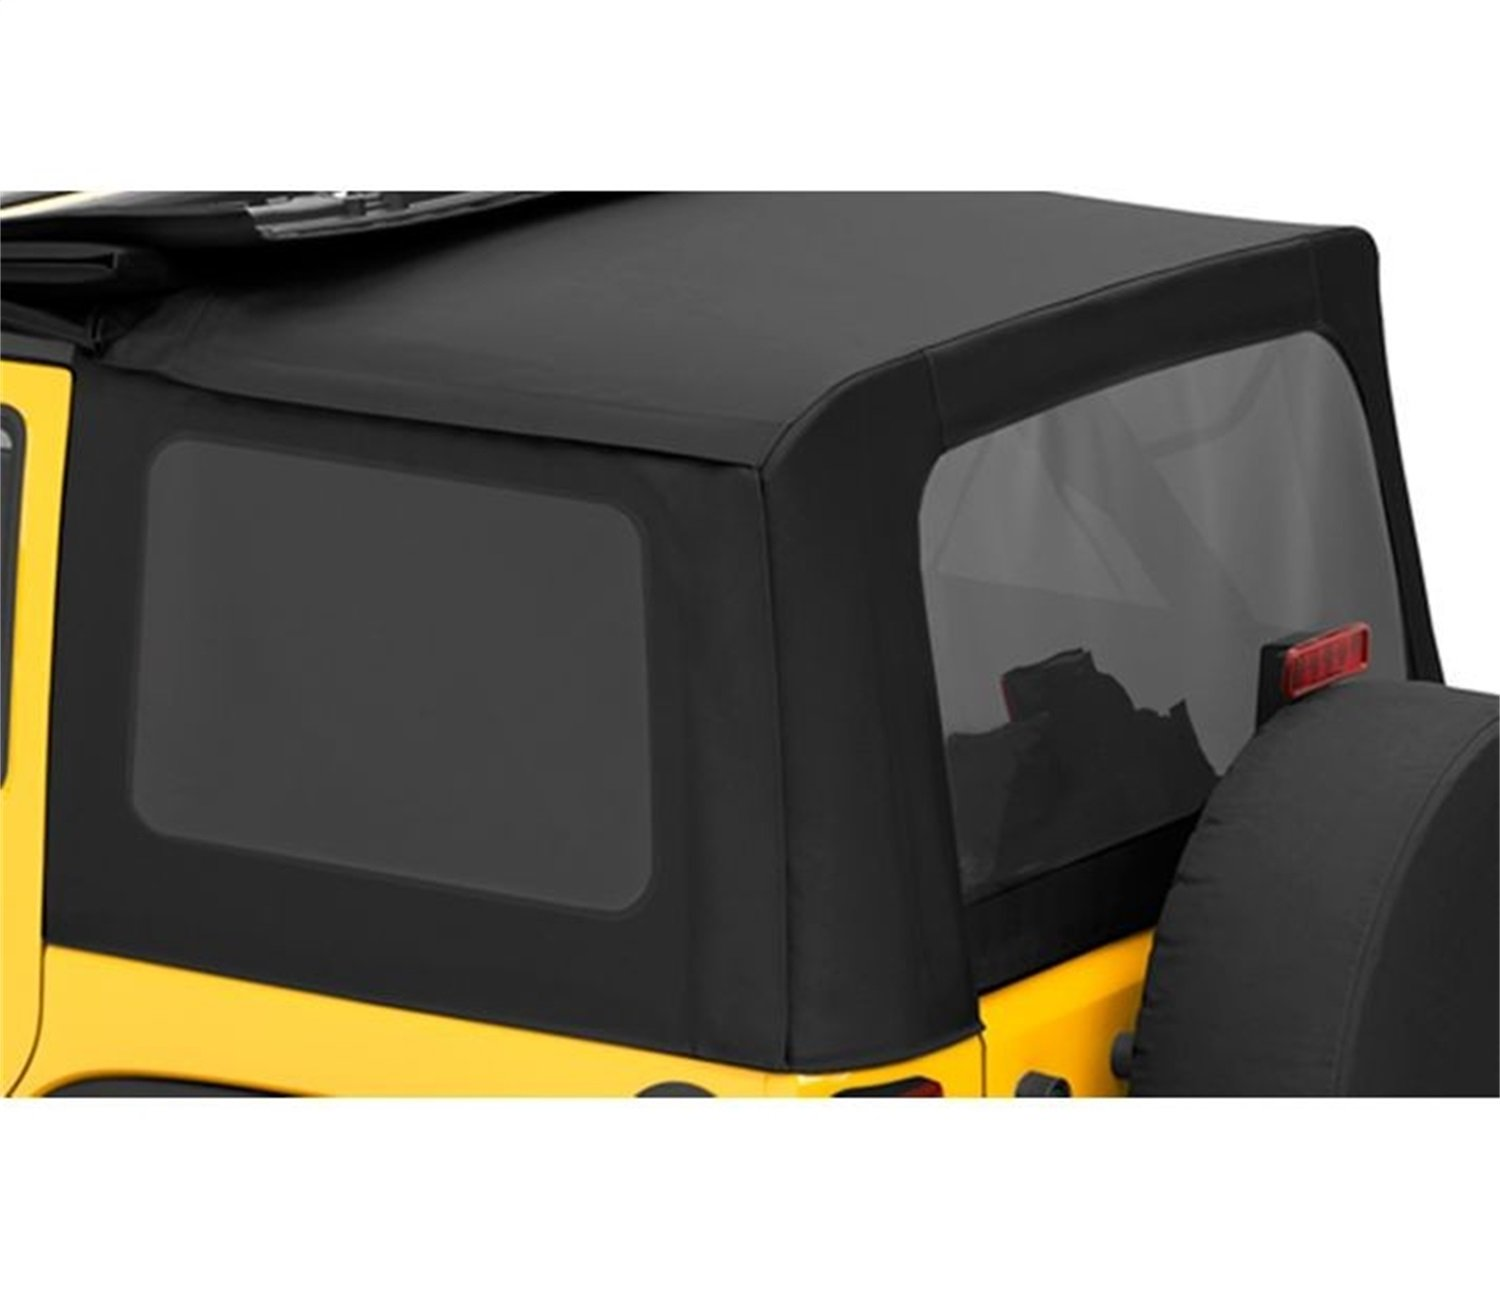 Bestop 58130-35 Black Diamond Tinted Window Kit Sailcloth Replace-A-Top for 2007-2010 Wrangler JK Unlimited